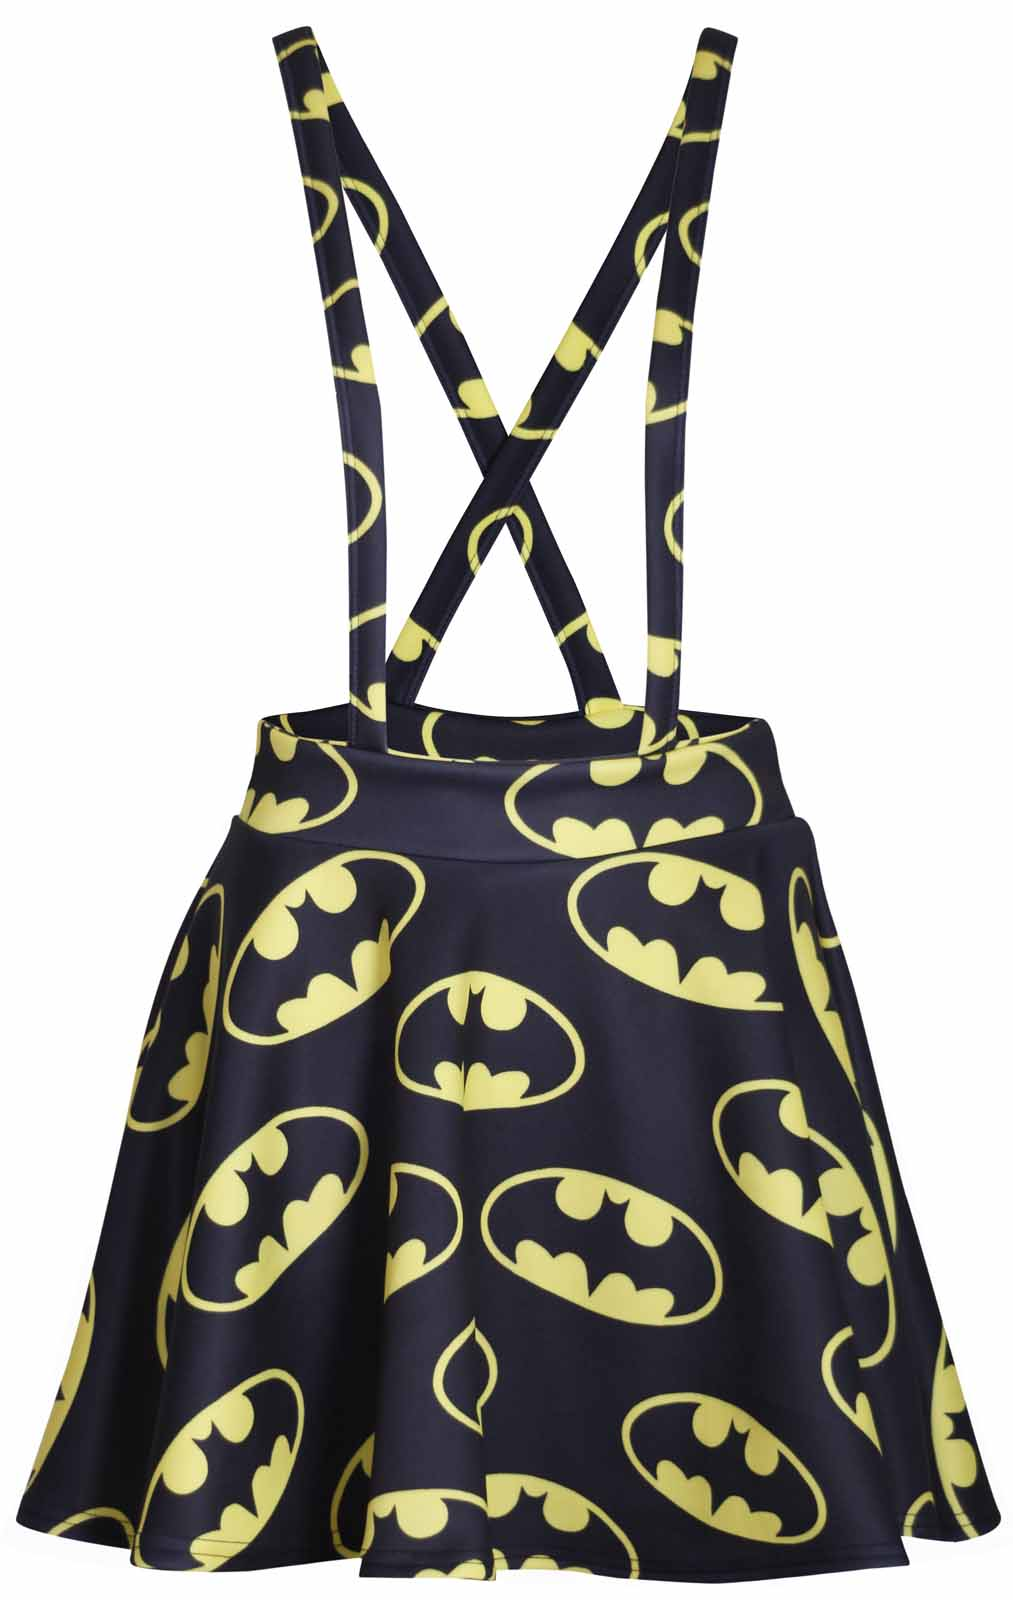 damen kleiderrock latzrock neu batman logo comic aufdruck mini skater ebay. Black Bedroom Furniture Sets. Home Design Ideas